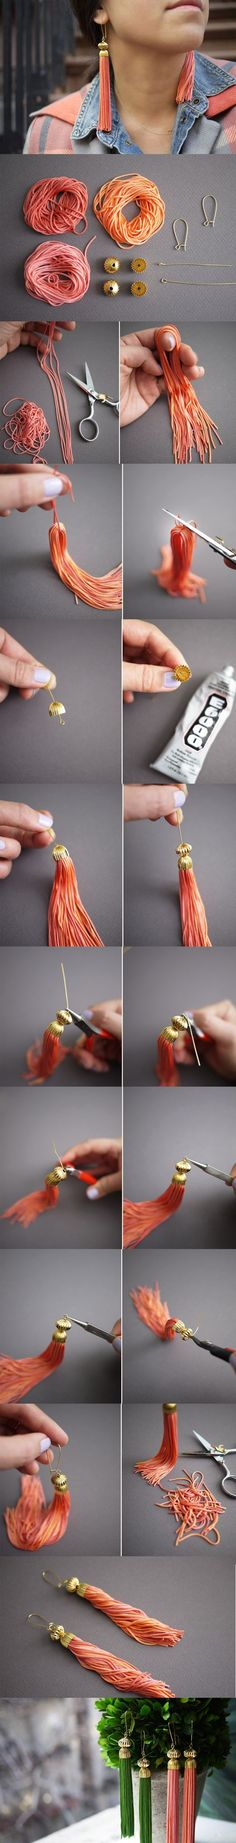 12 Interesting And Useful Daily DIY Ideas These tassels would also be good for a belt on a dress...